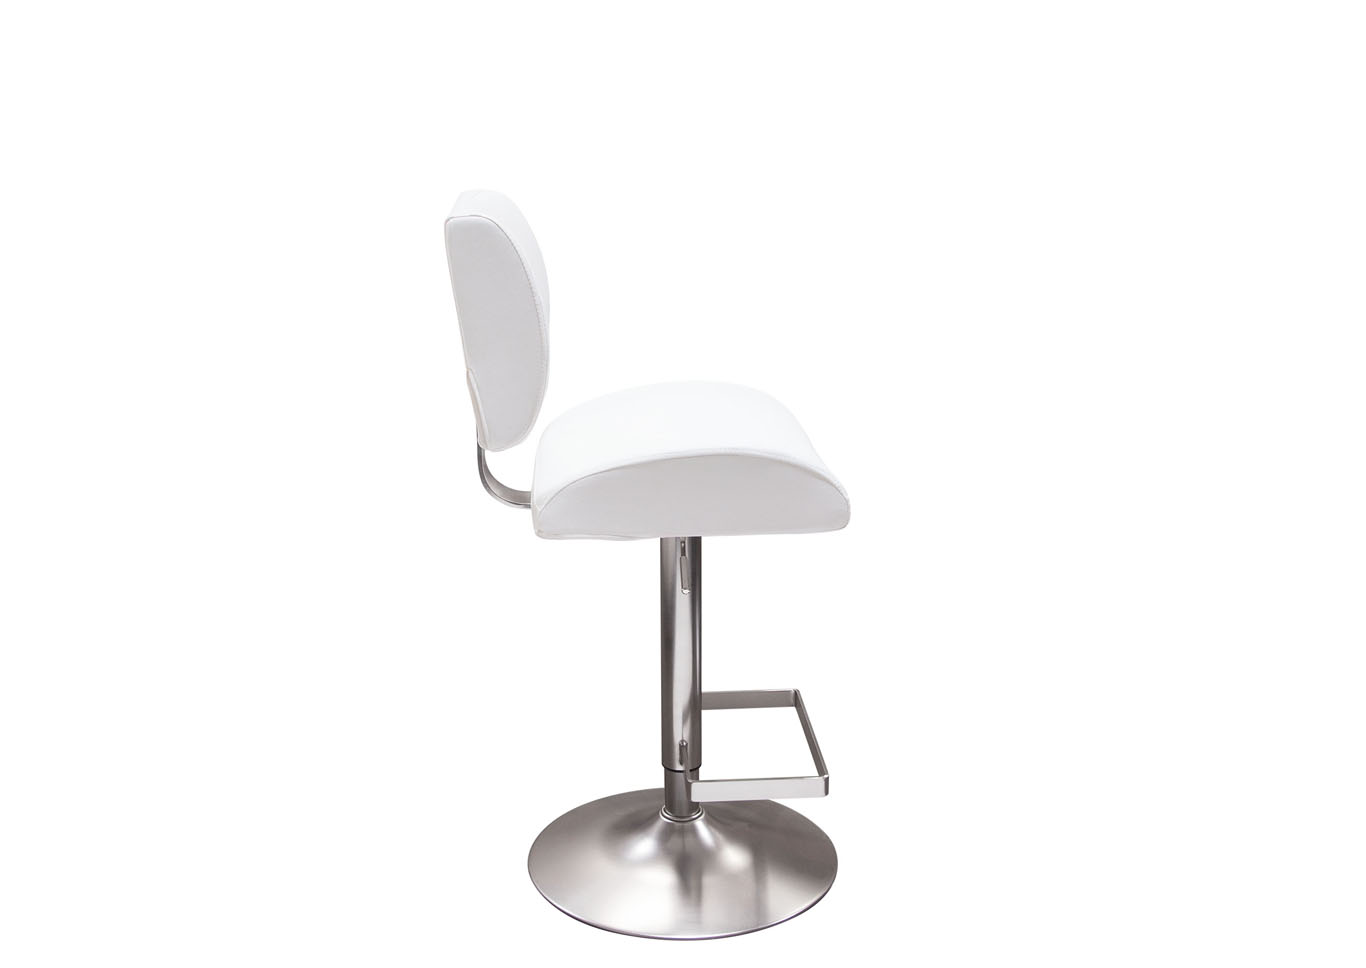 Contour White Hydraulic Adjustable Height Bar Stool w/Brushed Stainless Steel Base,Diamond Sofa